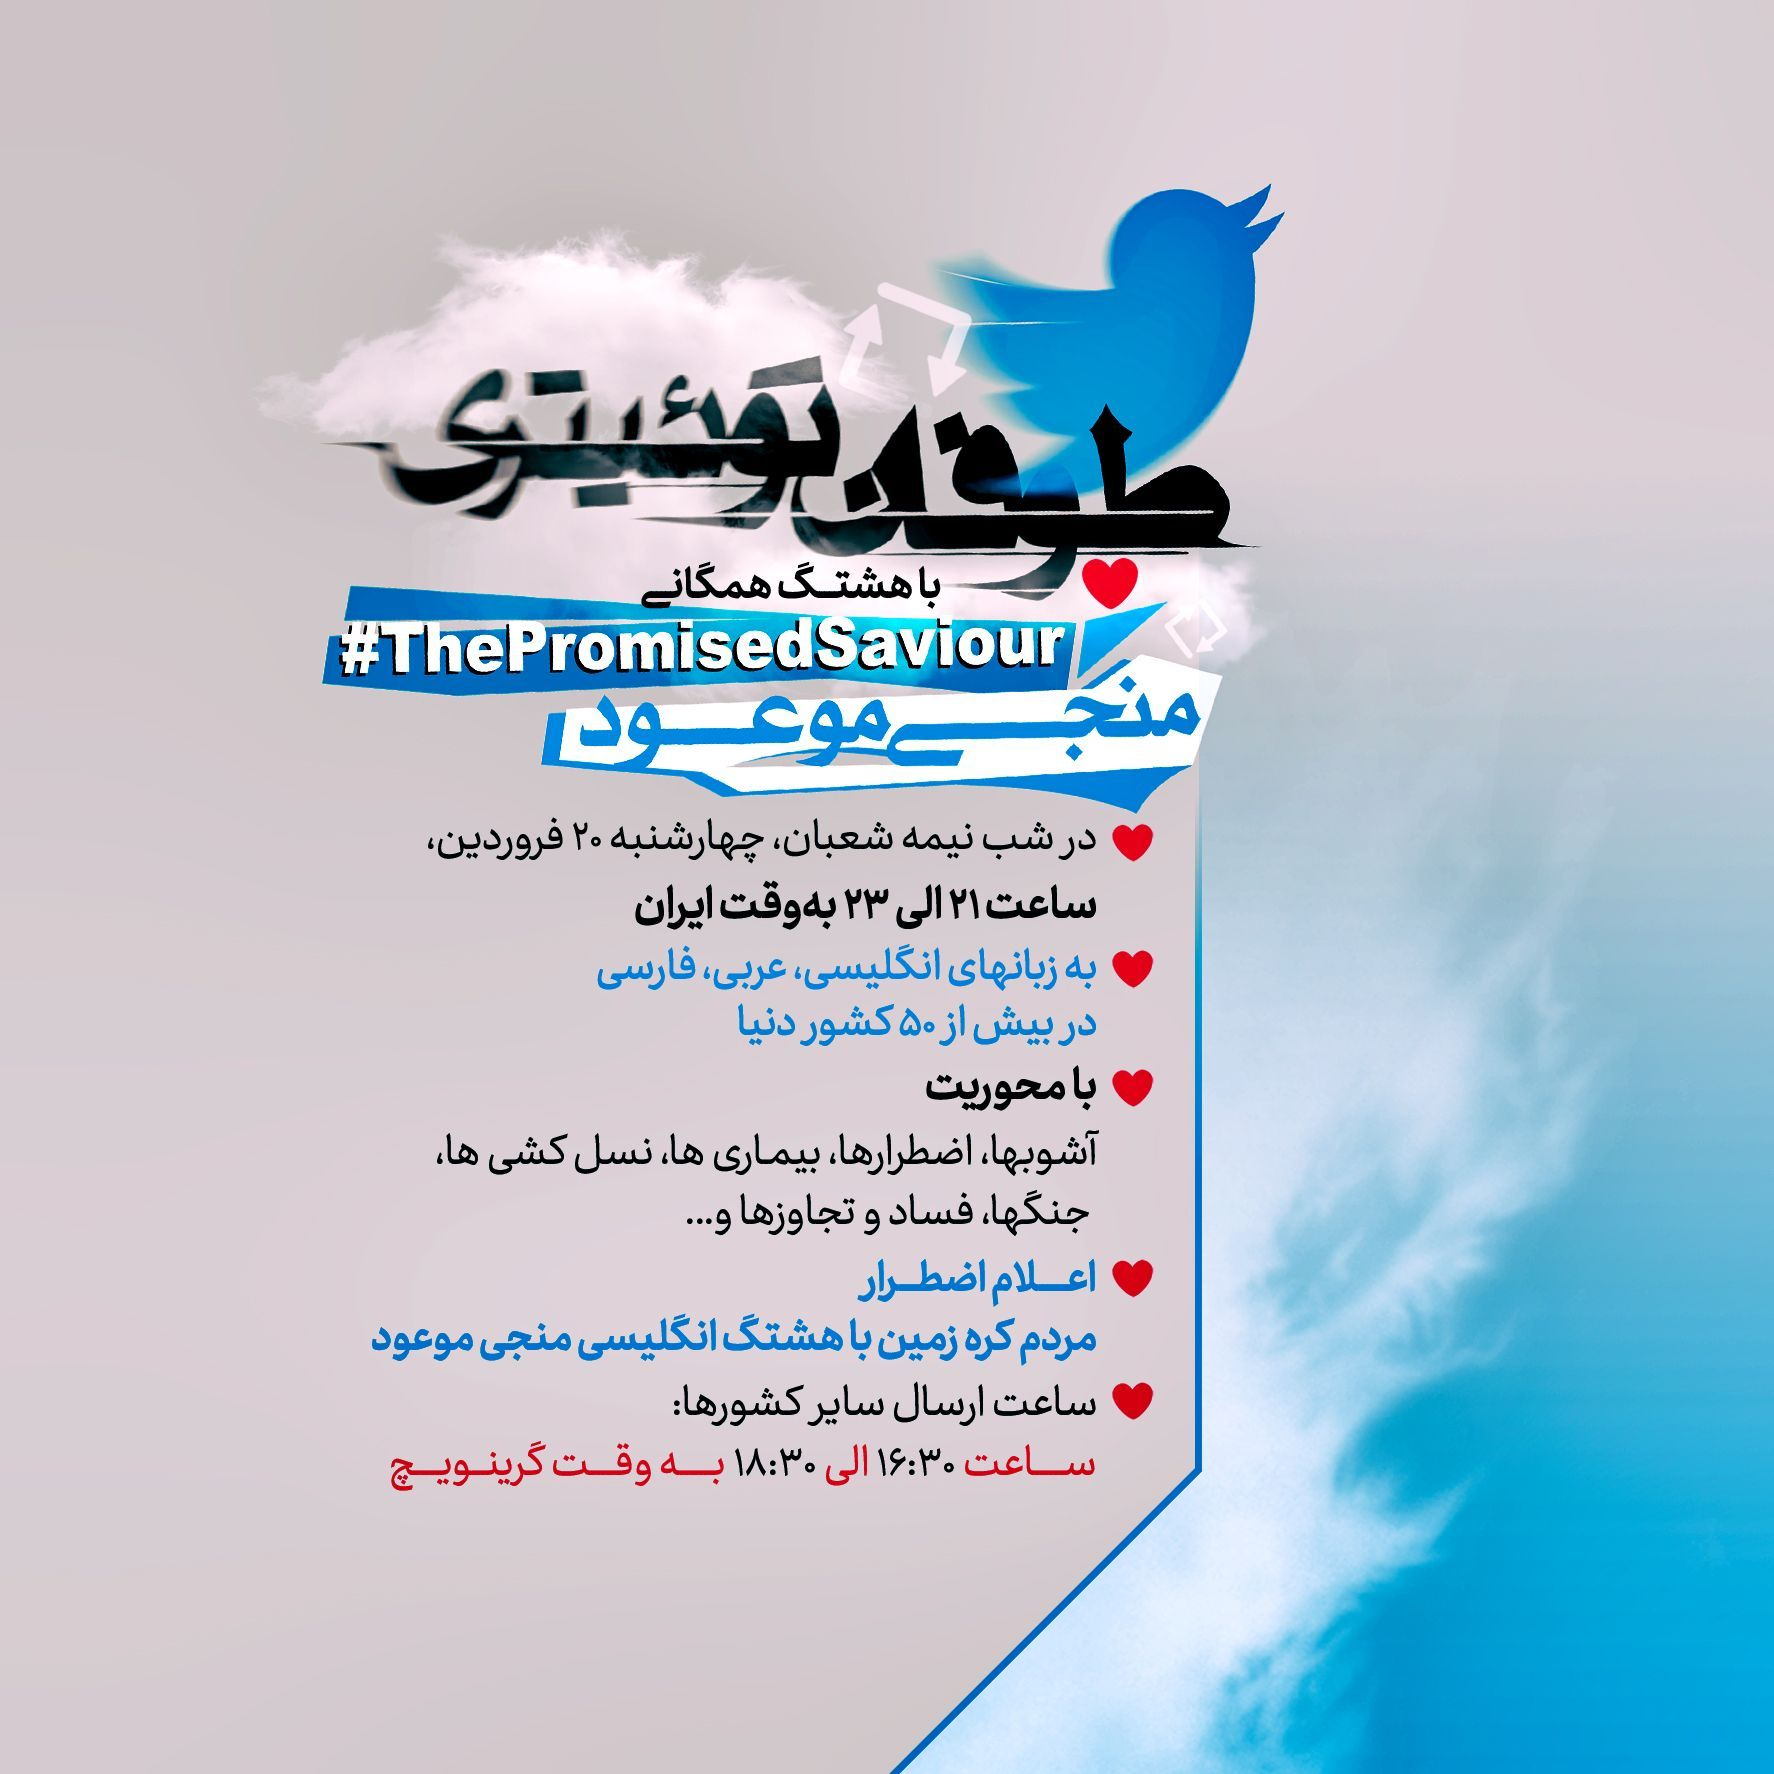 هشتگ #ThePromisedSaviour